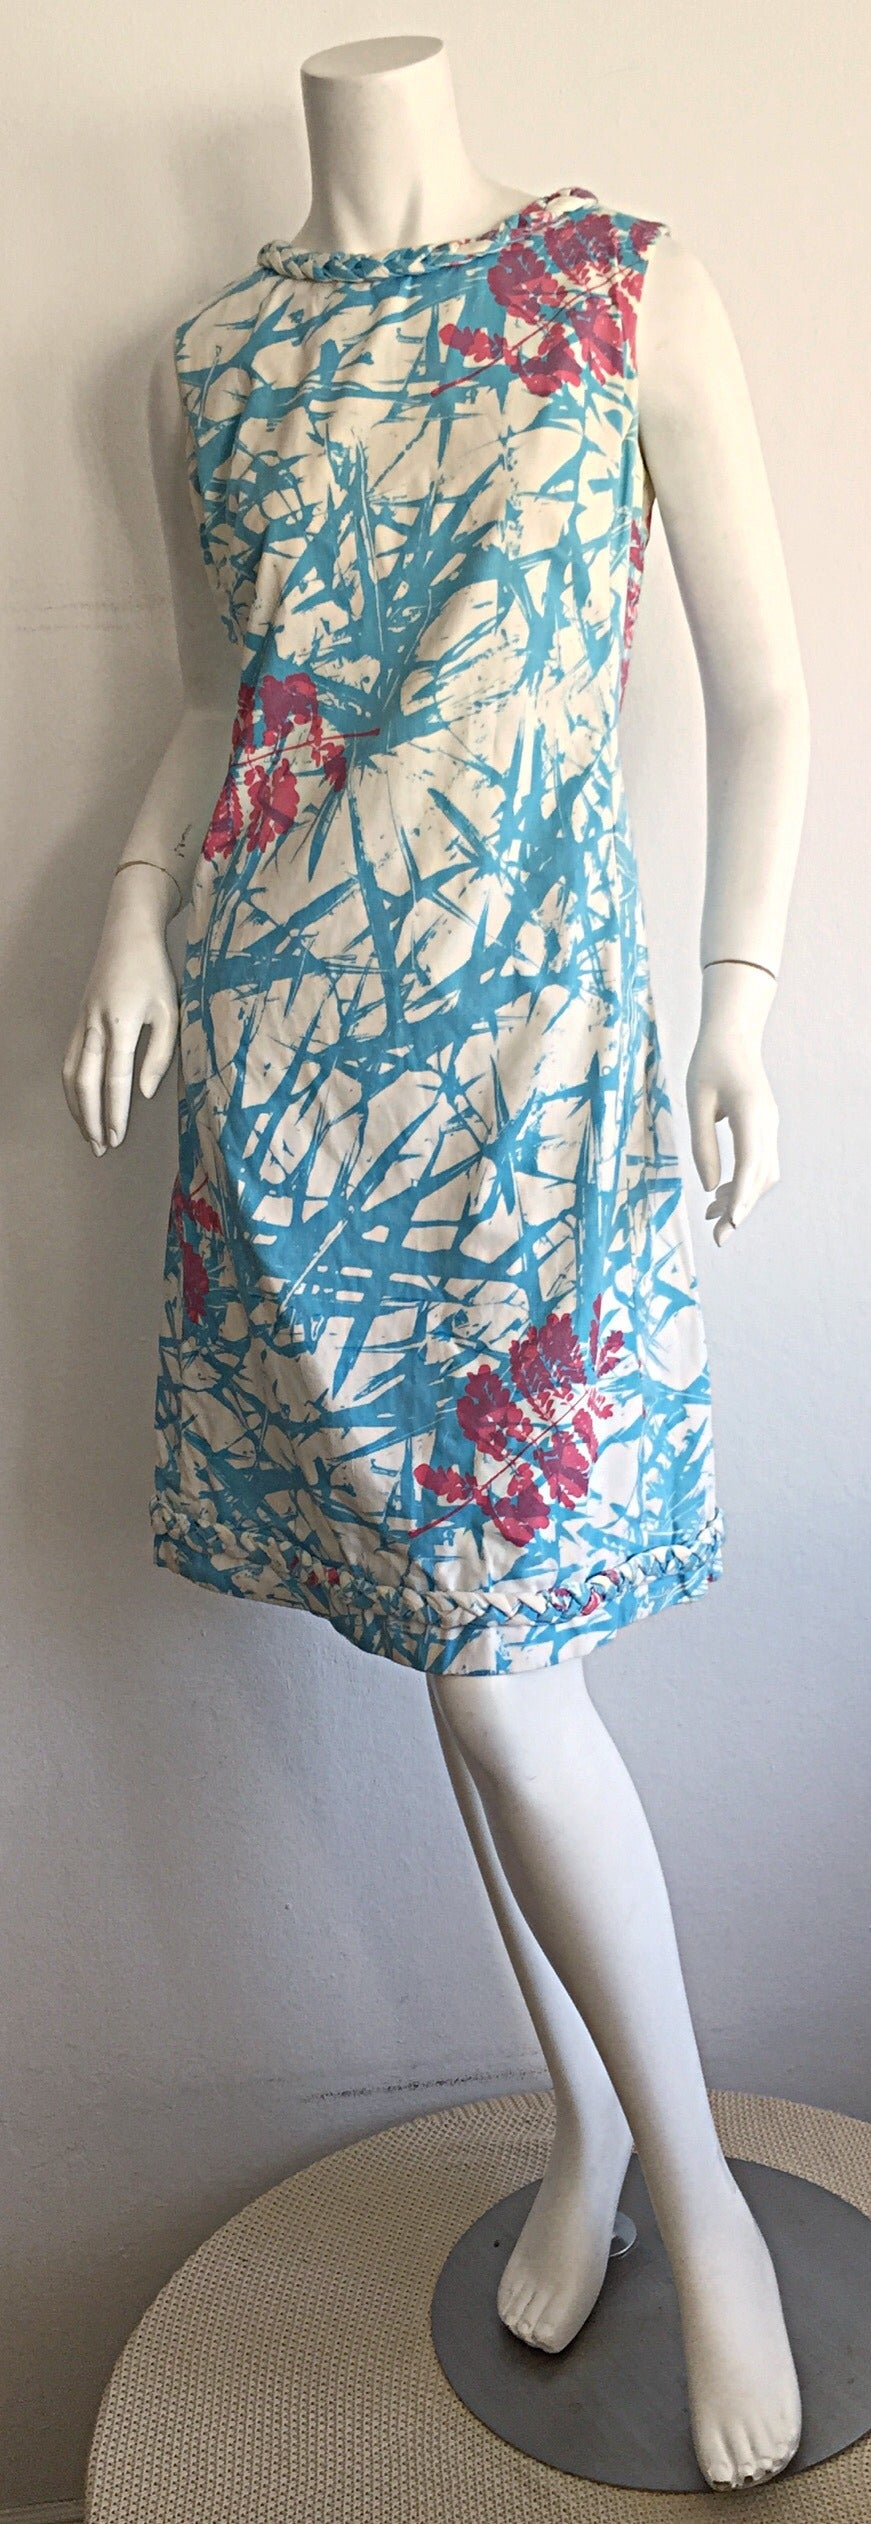 Rare 1960s Vintage ' THe Lilly ' by Lilly Pulitzer ' Thorn ' Cotton Shift Dress 8